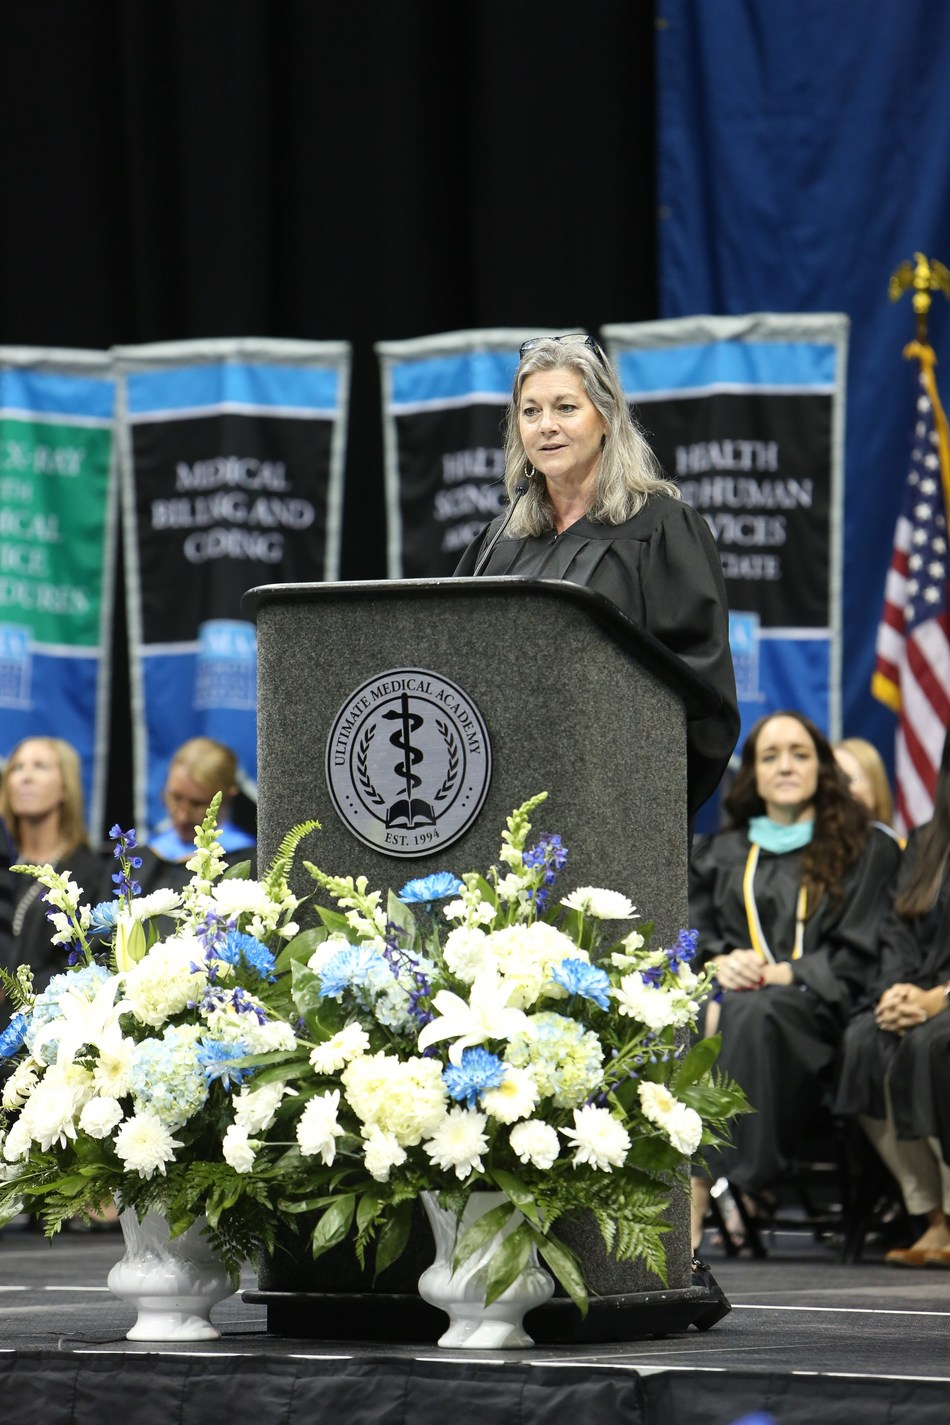 Education, women, and family advocate, former Massachusetts Governor Jane Swift, will deliver the commencement address at Ultimate Medical Academy's Fall Commencement (#UMAgrad) to almost 3,700 graduates on Saturday, September 22, 2018. (PRNewsfoto/Ultimate Medical Academy)